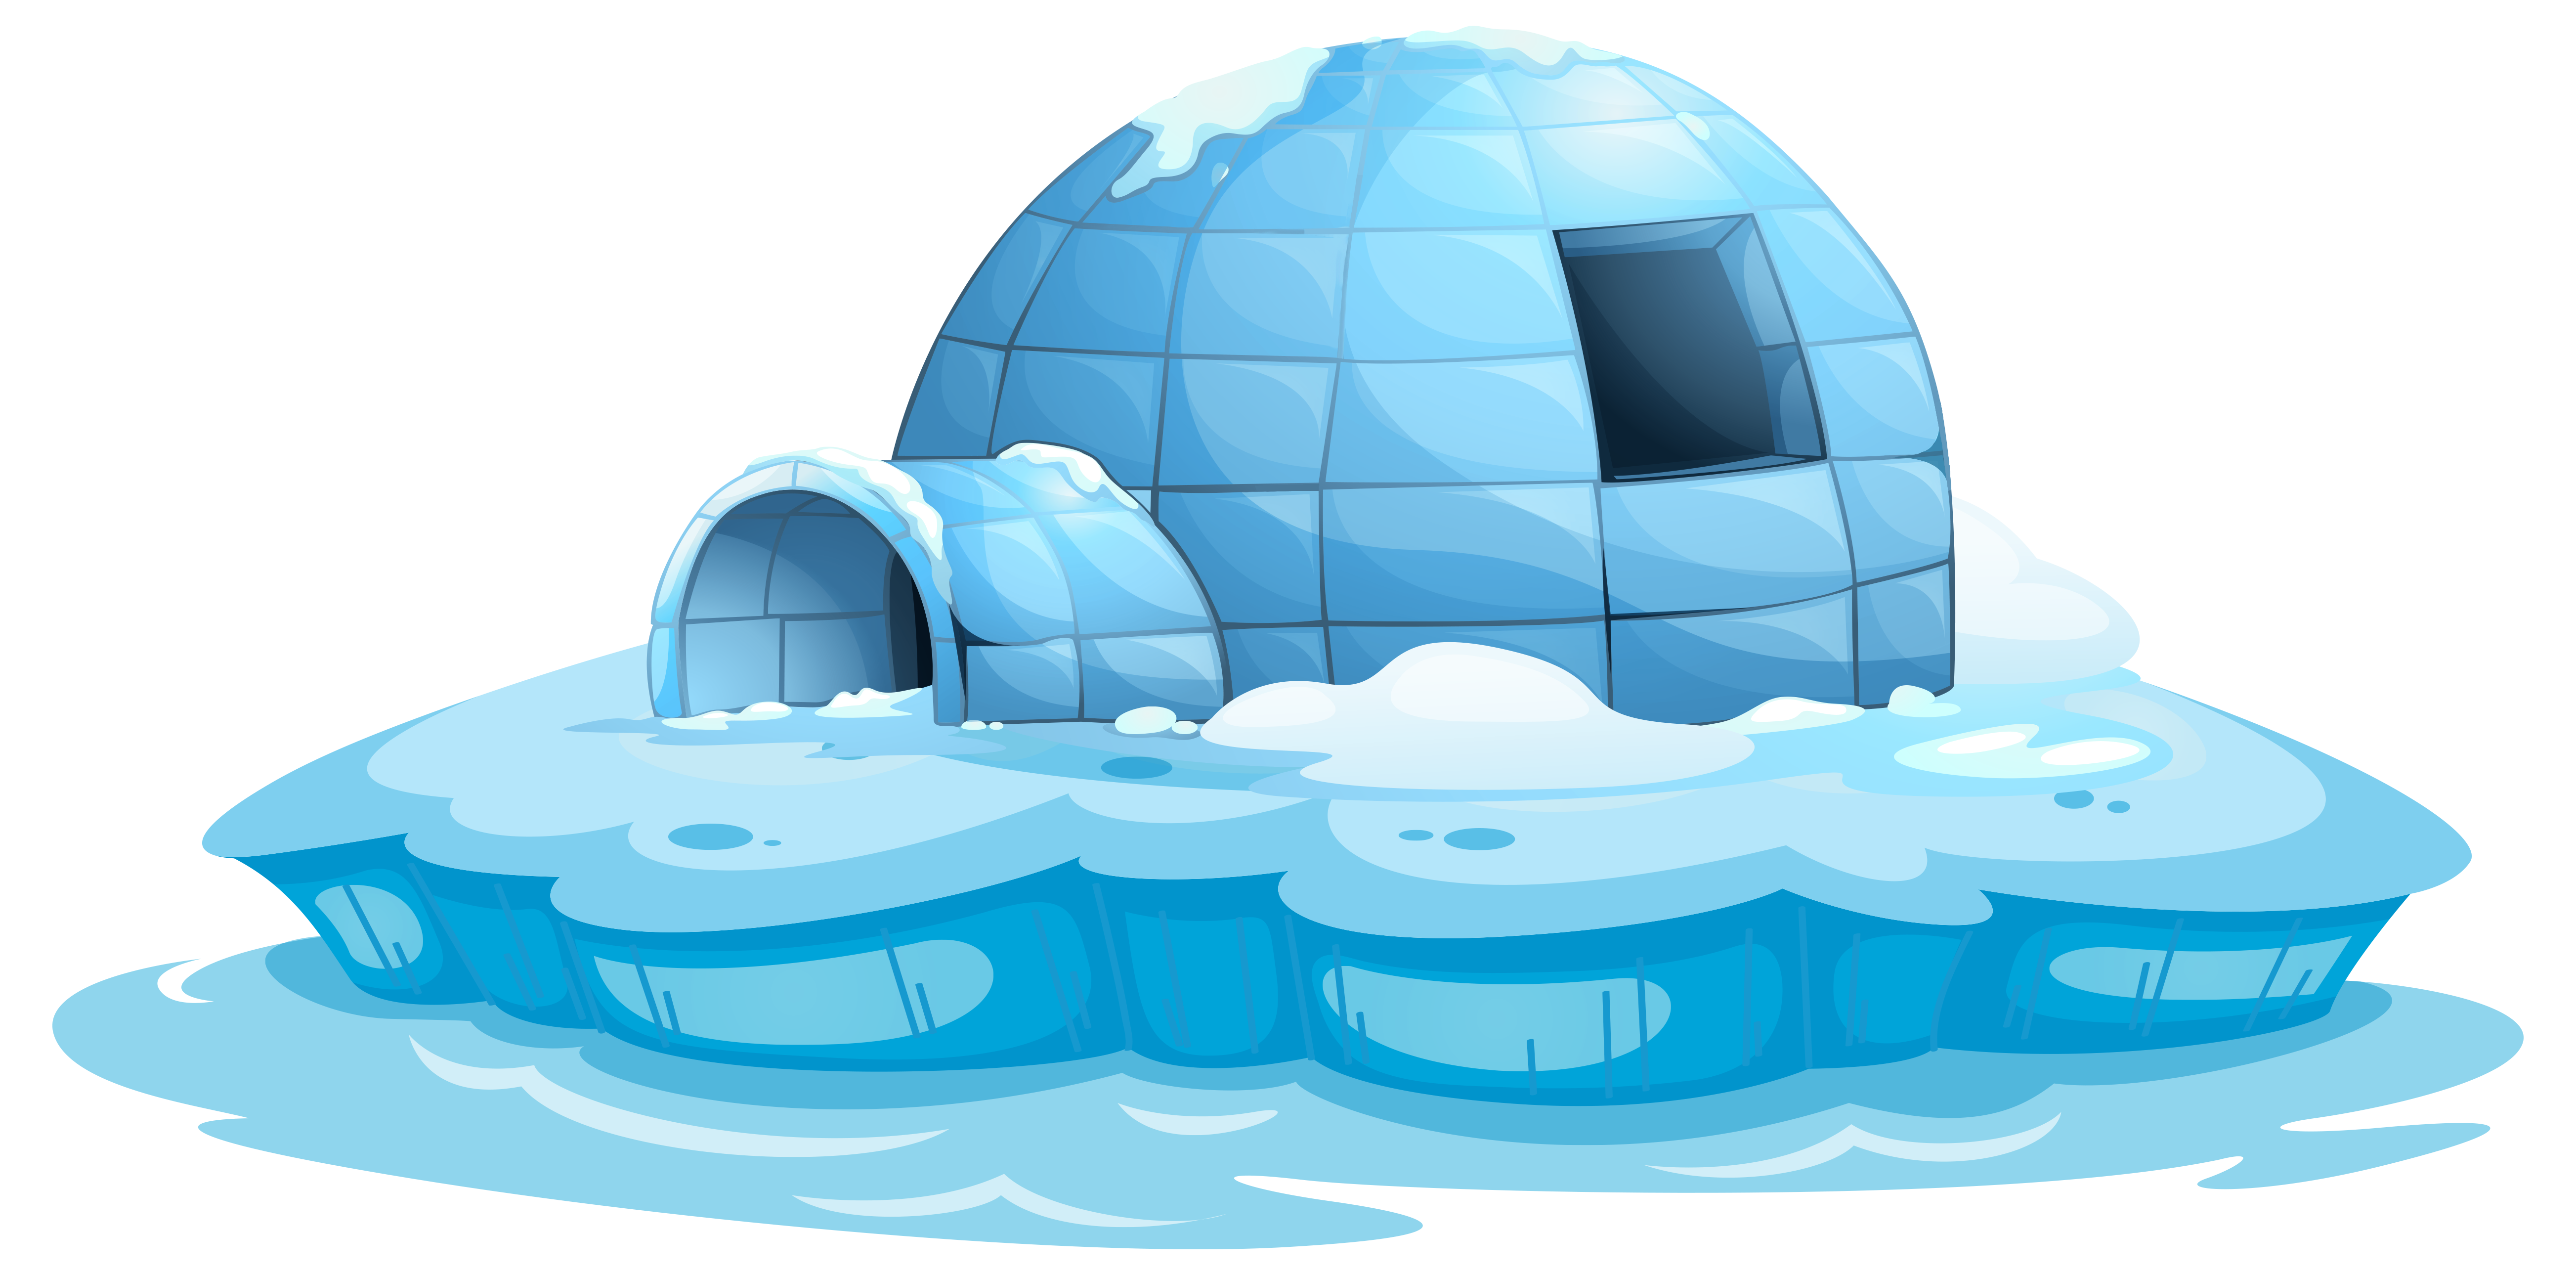 Igloo clipart cute.  collection of png